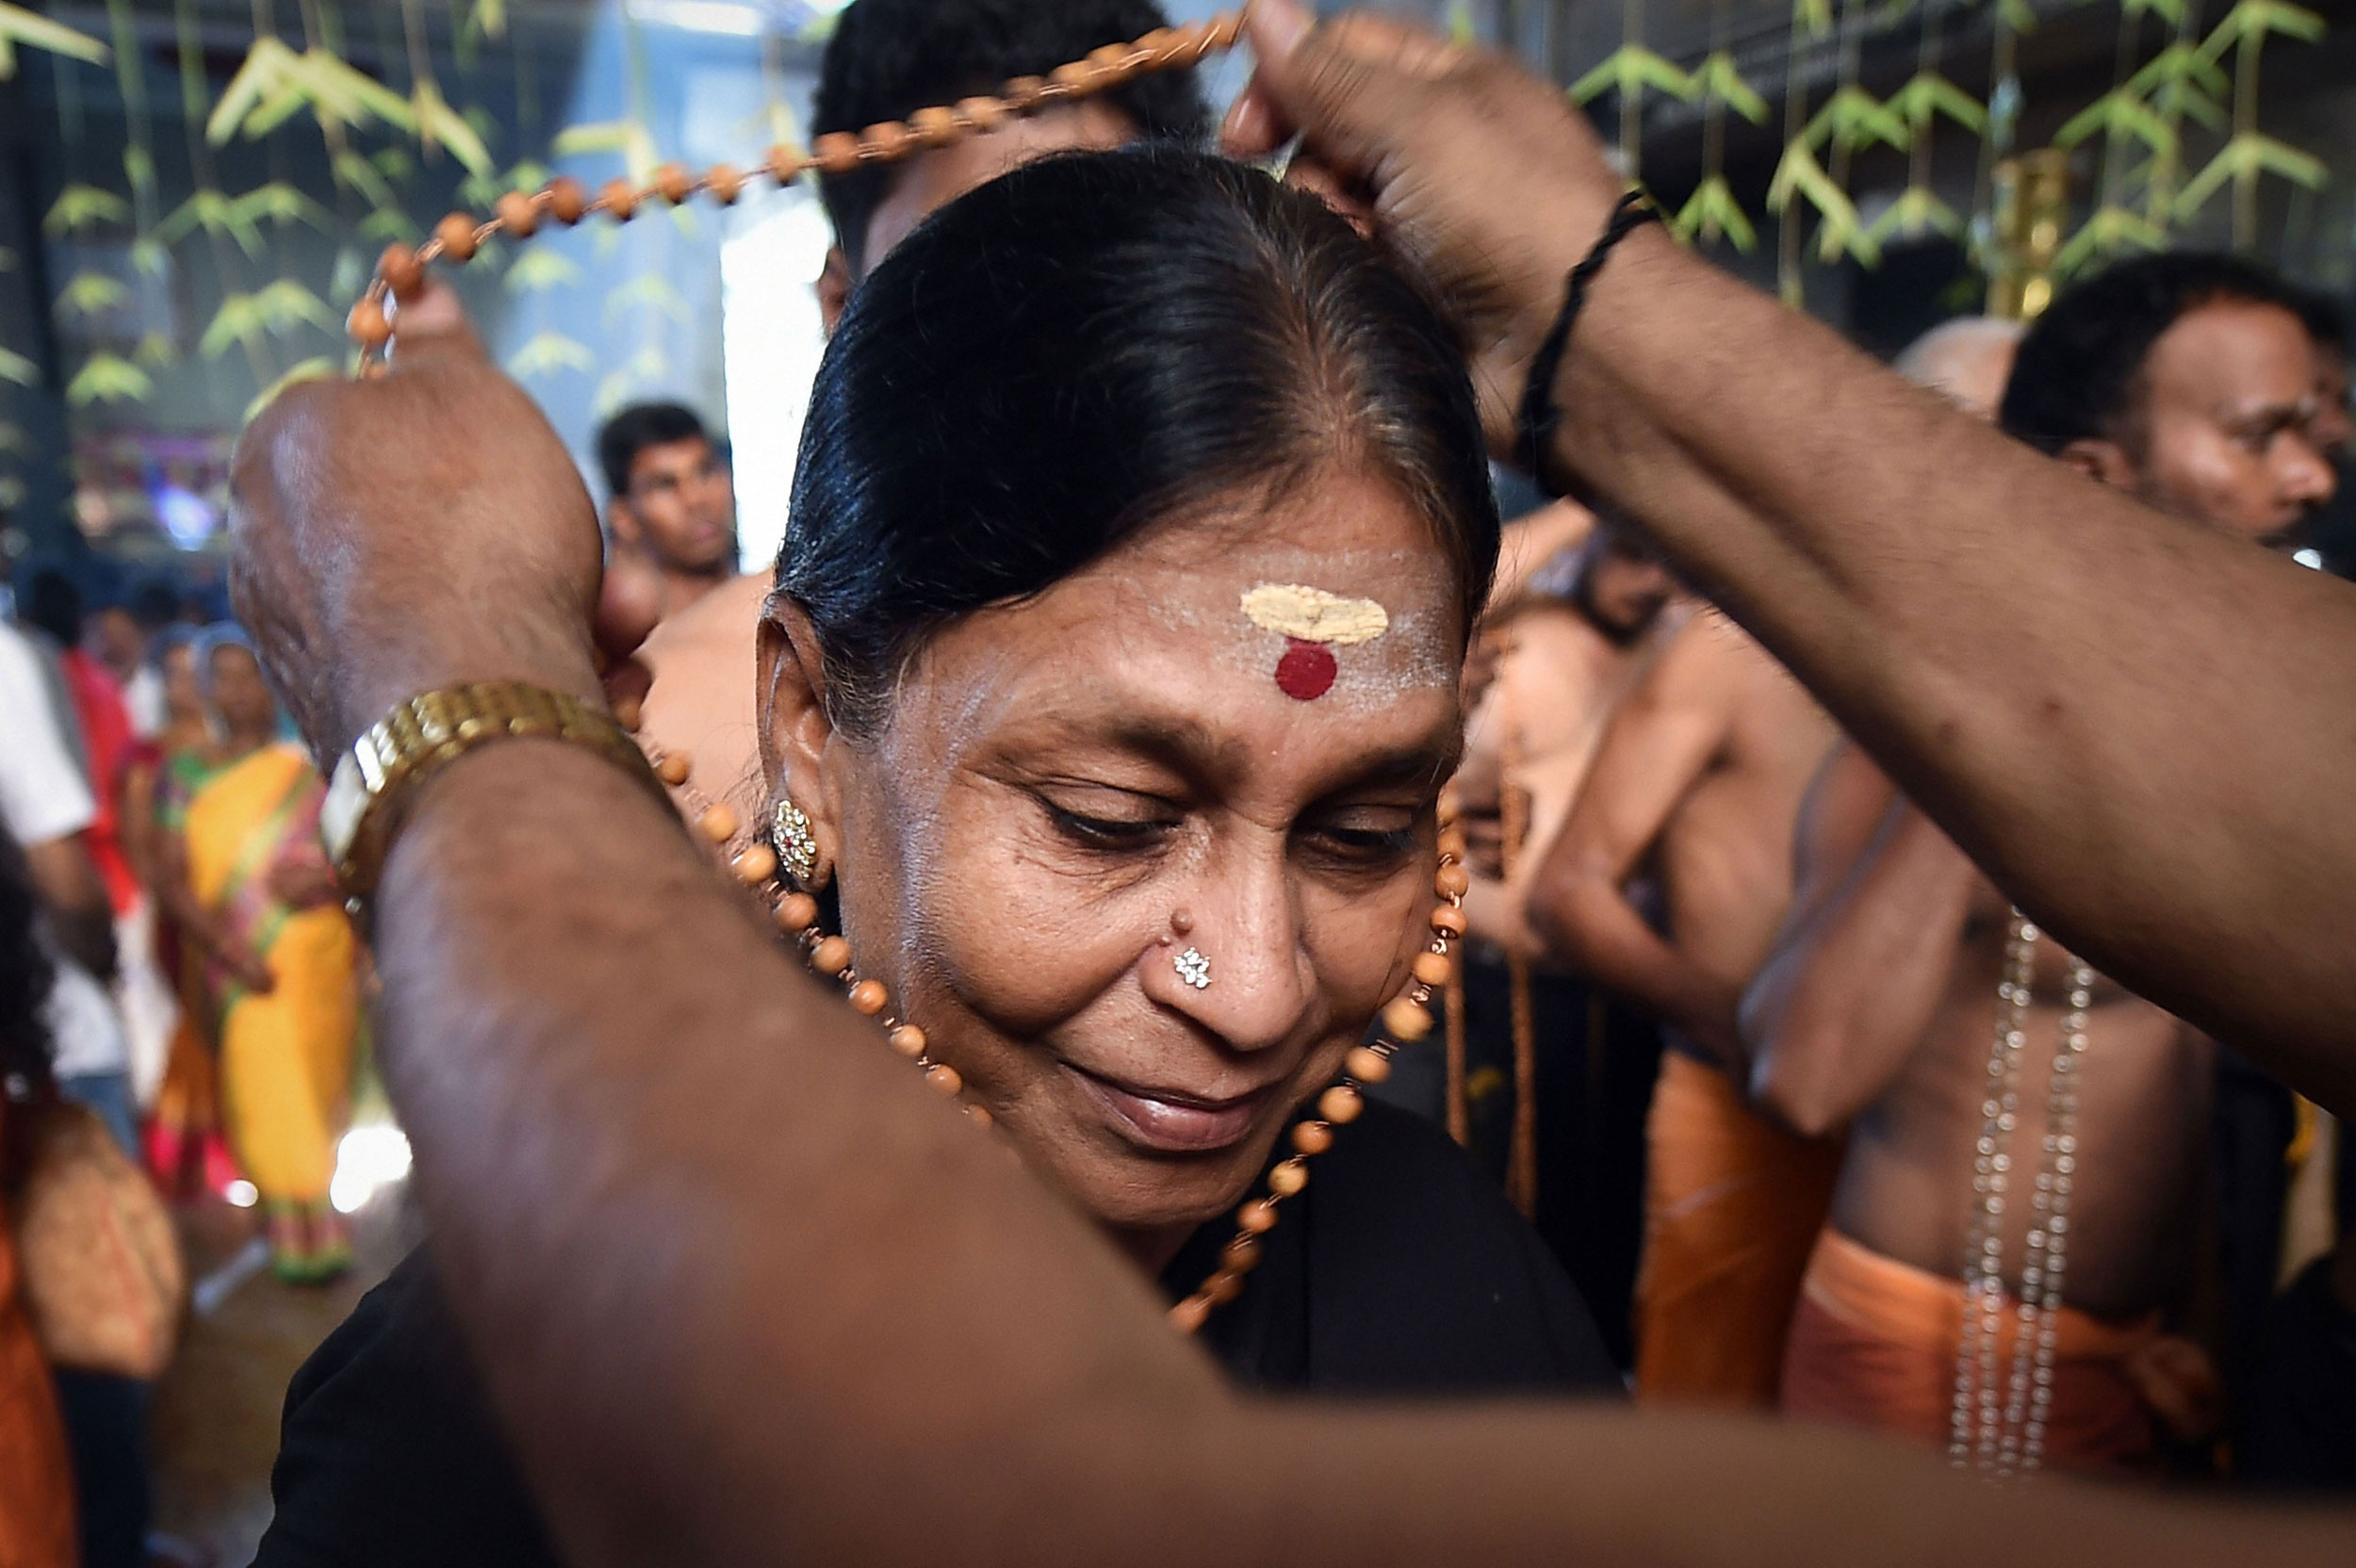 A devotee at a temple before their pilgrimage to Lord Ayyappa temple in Sabarimala in Chennai on November 17, 2019.